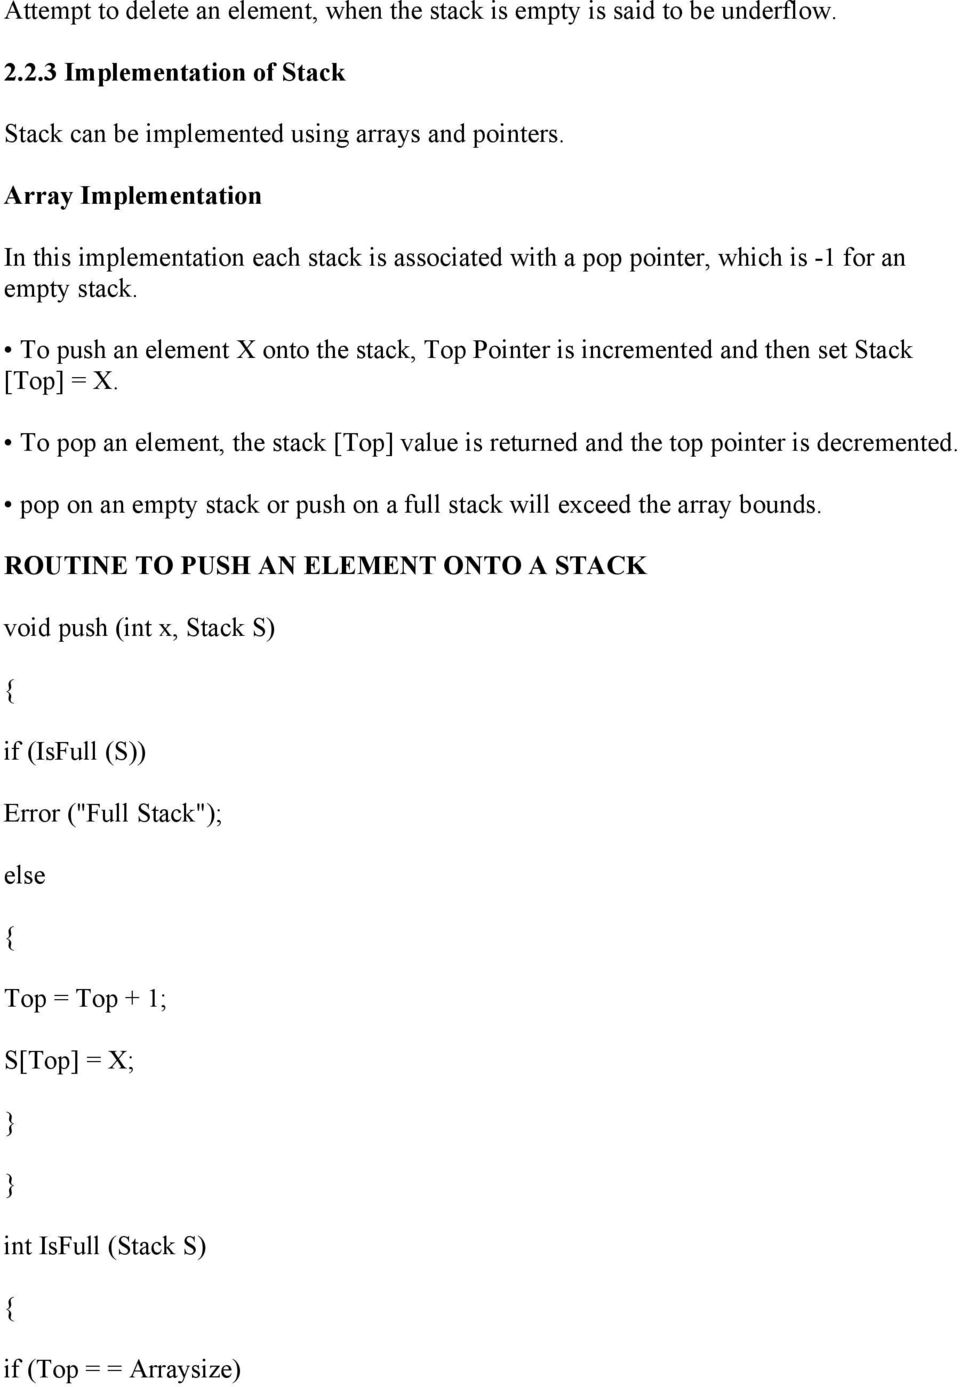 To push an element X onto the stack, Top Pointer is incremented and then set Stack [Top] = X.